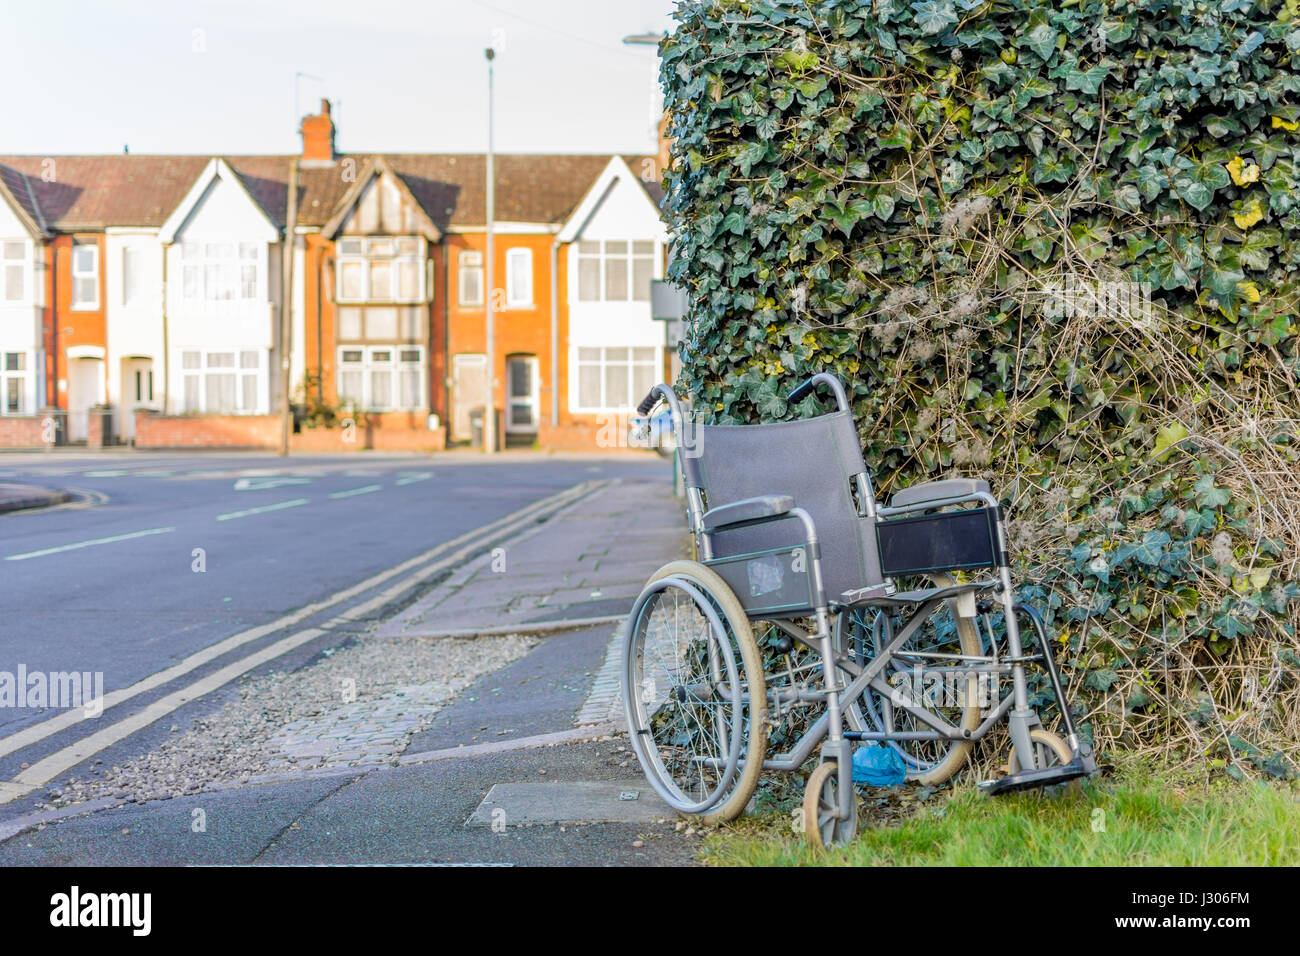 Abandoned wheelchair with cigarette packet on England street. - Stock Image